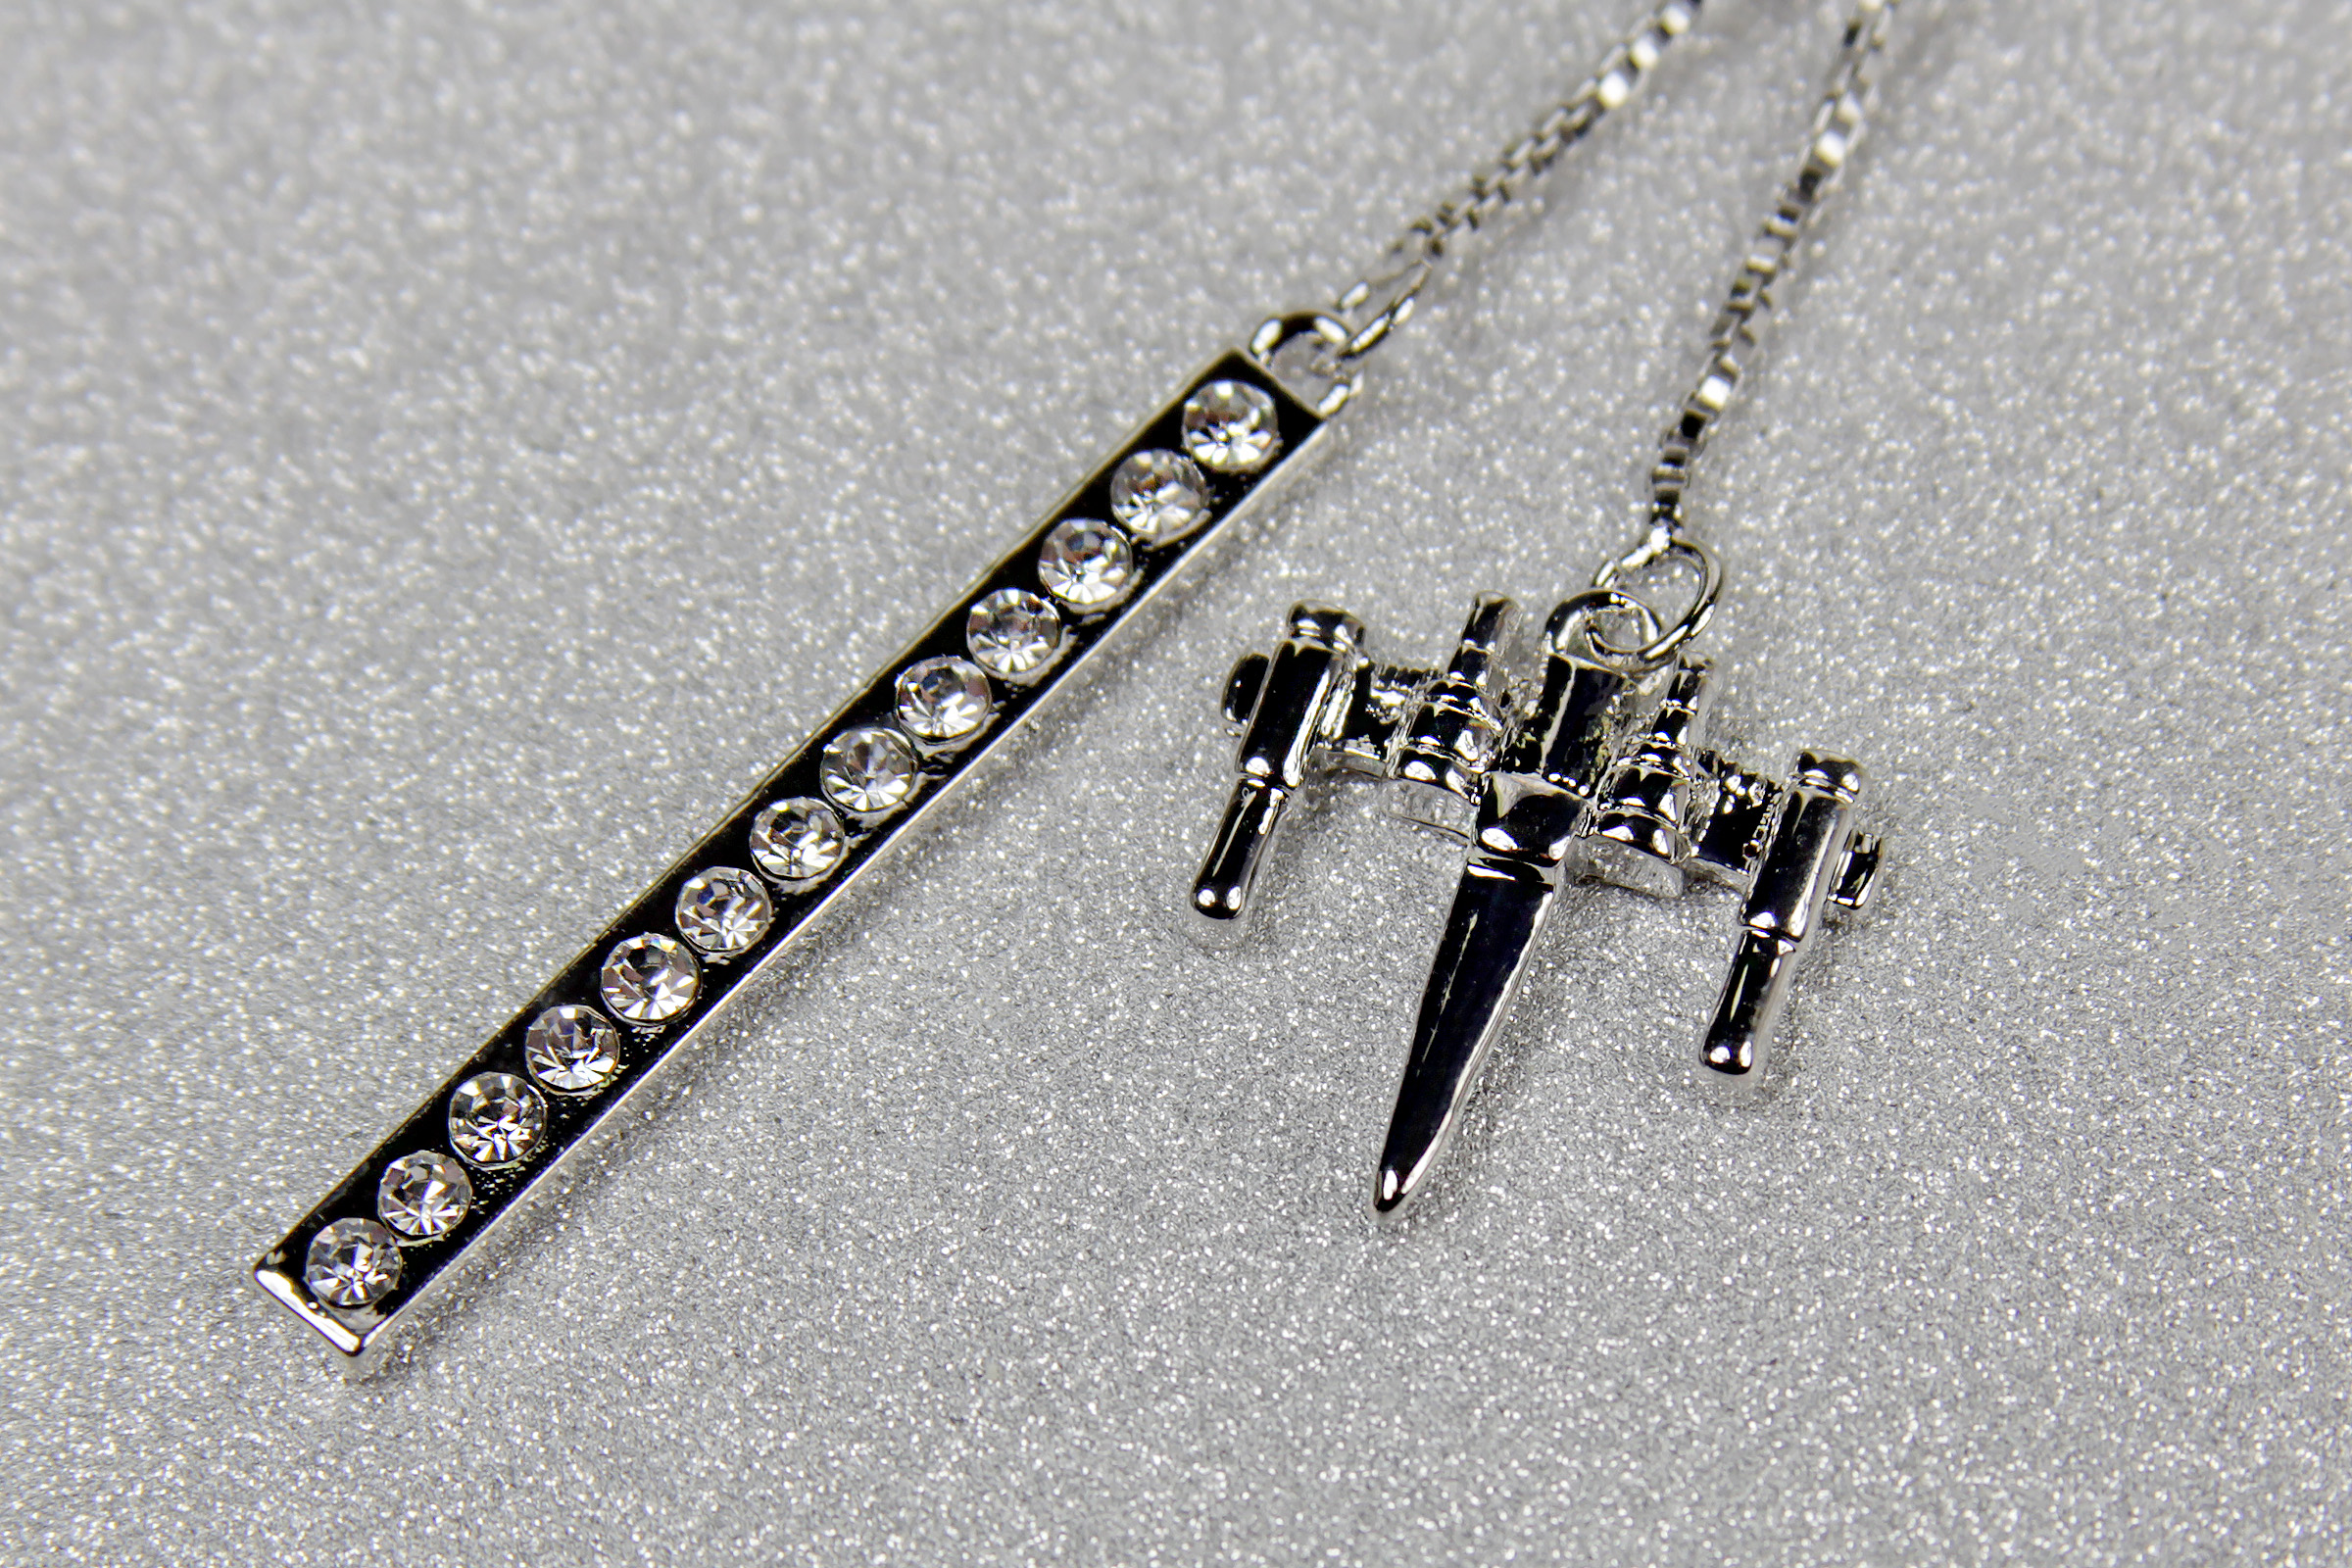 One Force Designs x Star Wars X-Wing Fighter Necklace (Silver Plated)